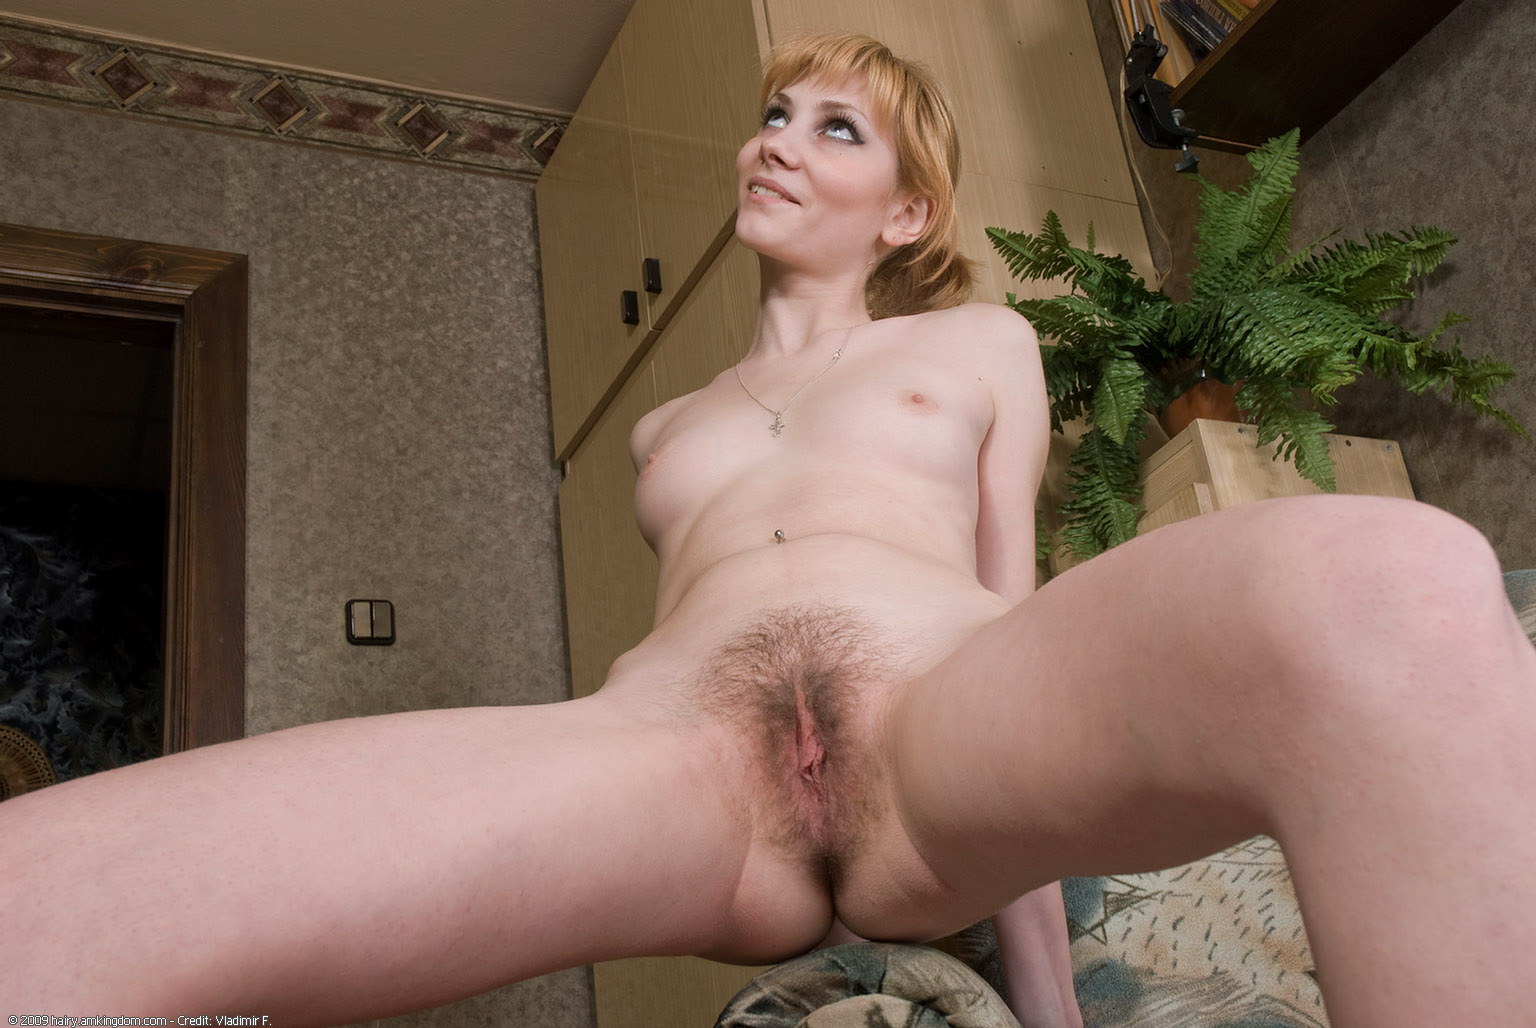 Masturbating pumped up pussy